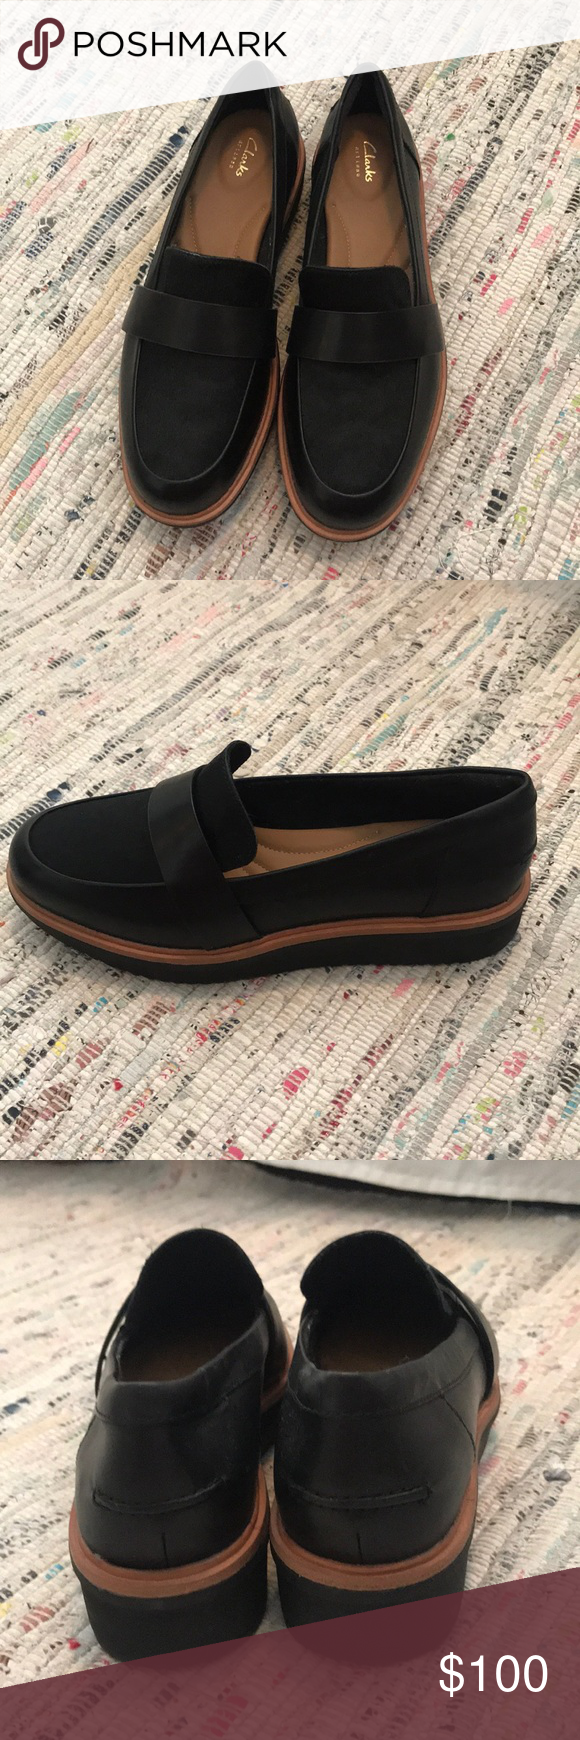 b6b1cfd0d65 Clarks Women s Black Leather Loafer Condition  Never worn Size  6.5 Style  Teadale  Elsa Loafer 1 1 4   heel